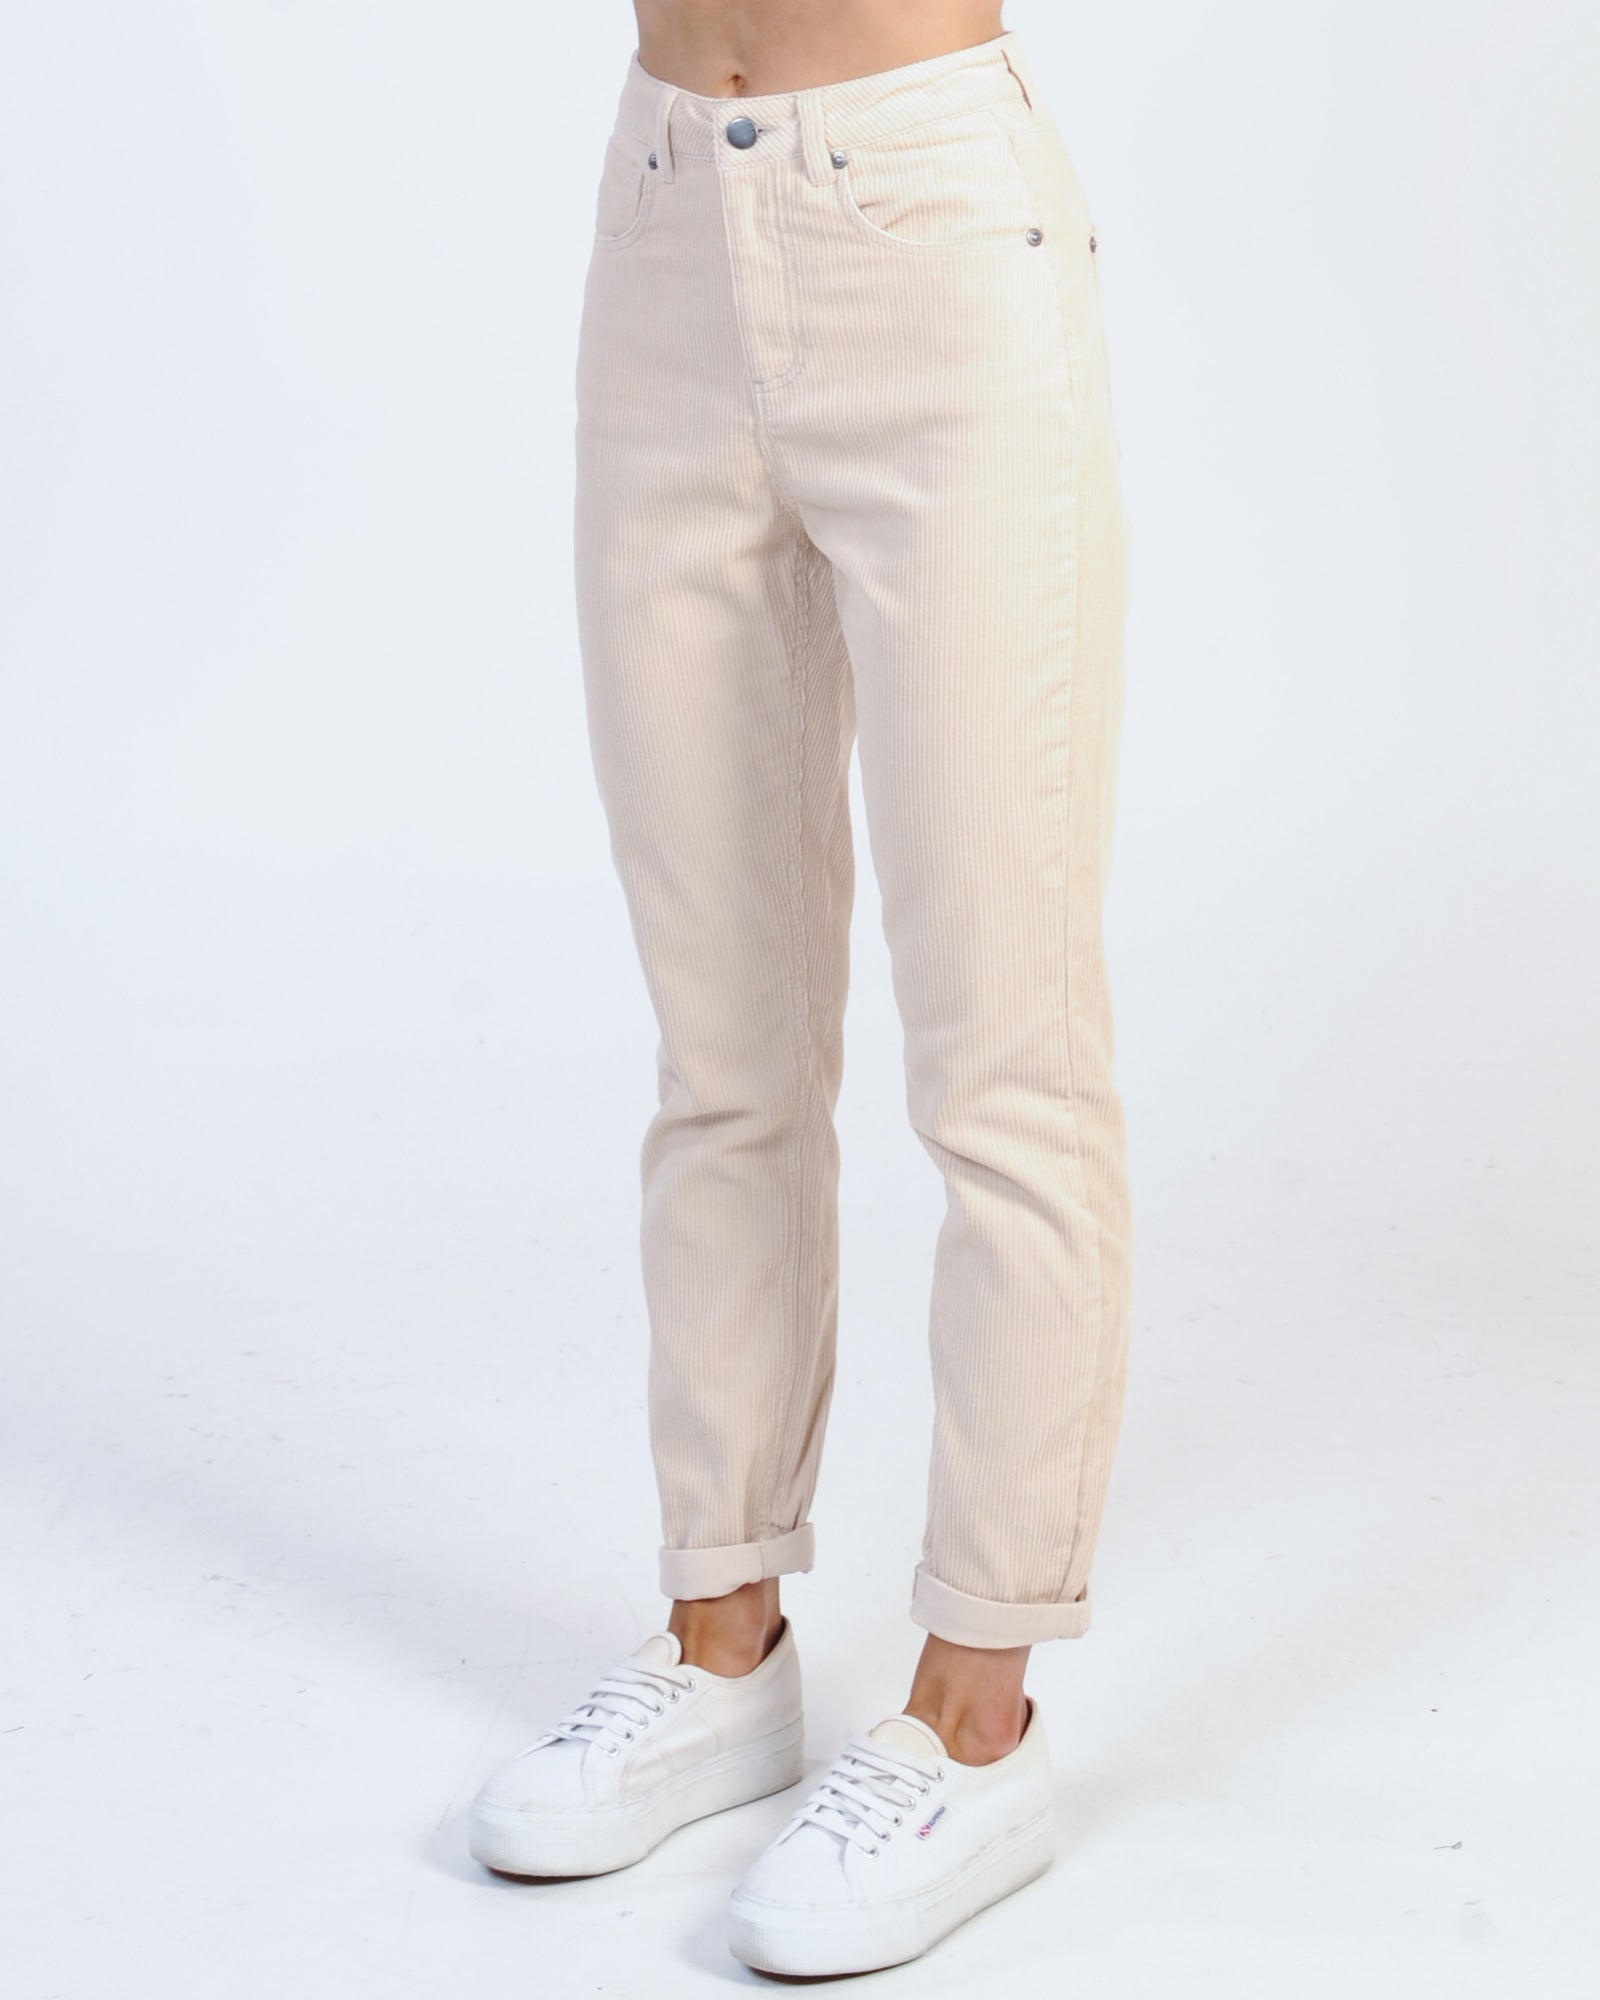 All About Eve Greta Cord Pant - Vintage White